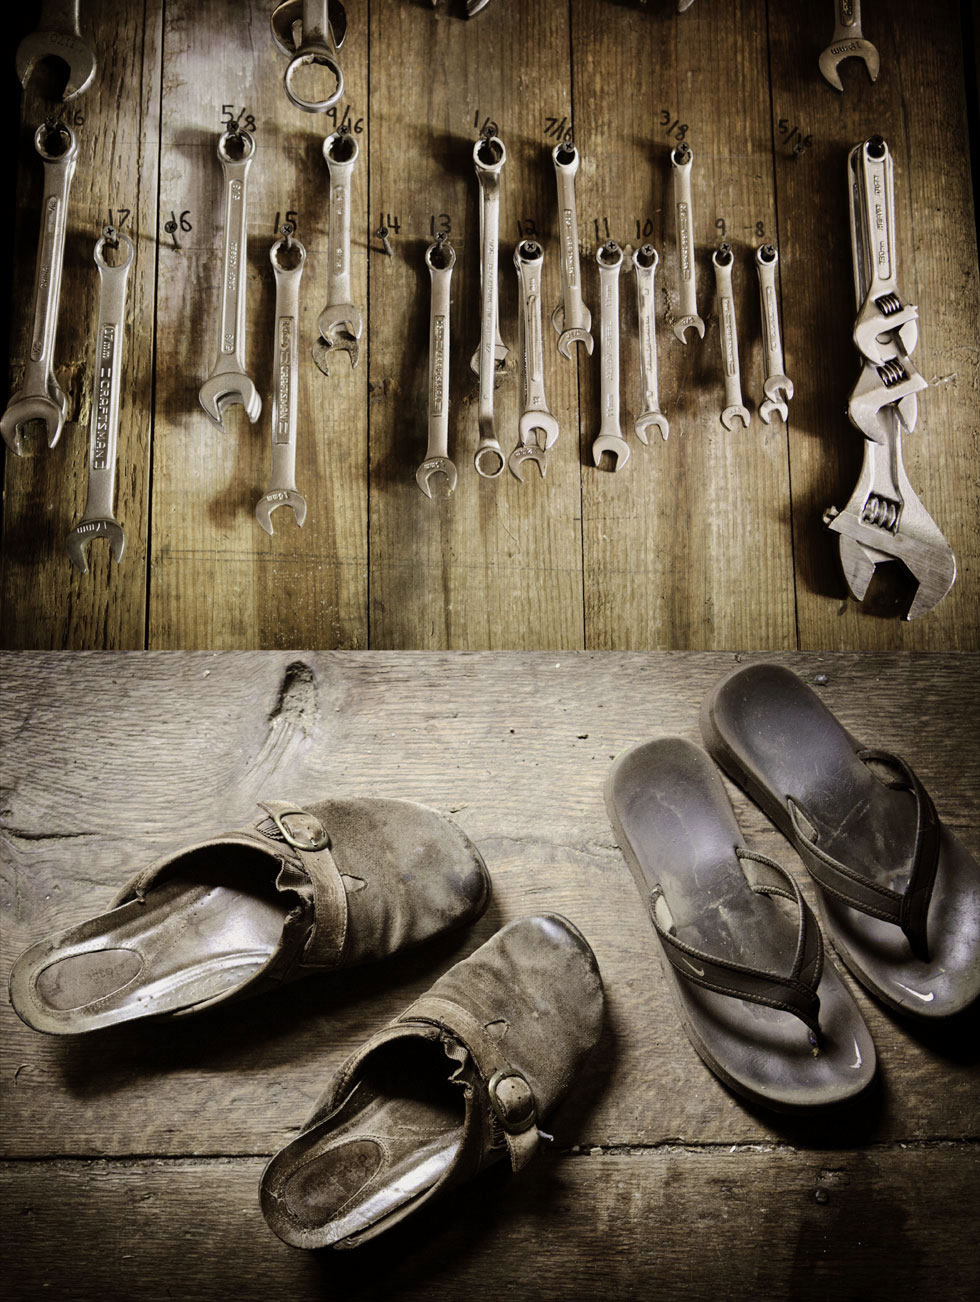 Top: Tools hang in Ed Wazer's workshop. Bottom: Family shoes rest on broad floor boards while Ed and Raluca work outside.